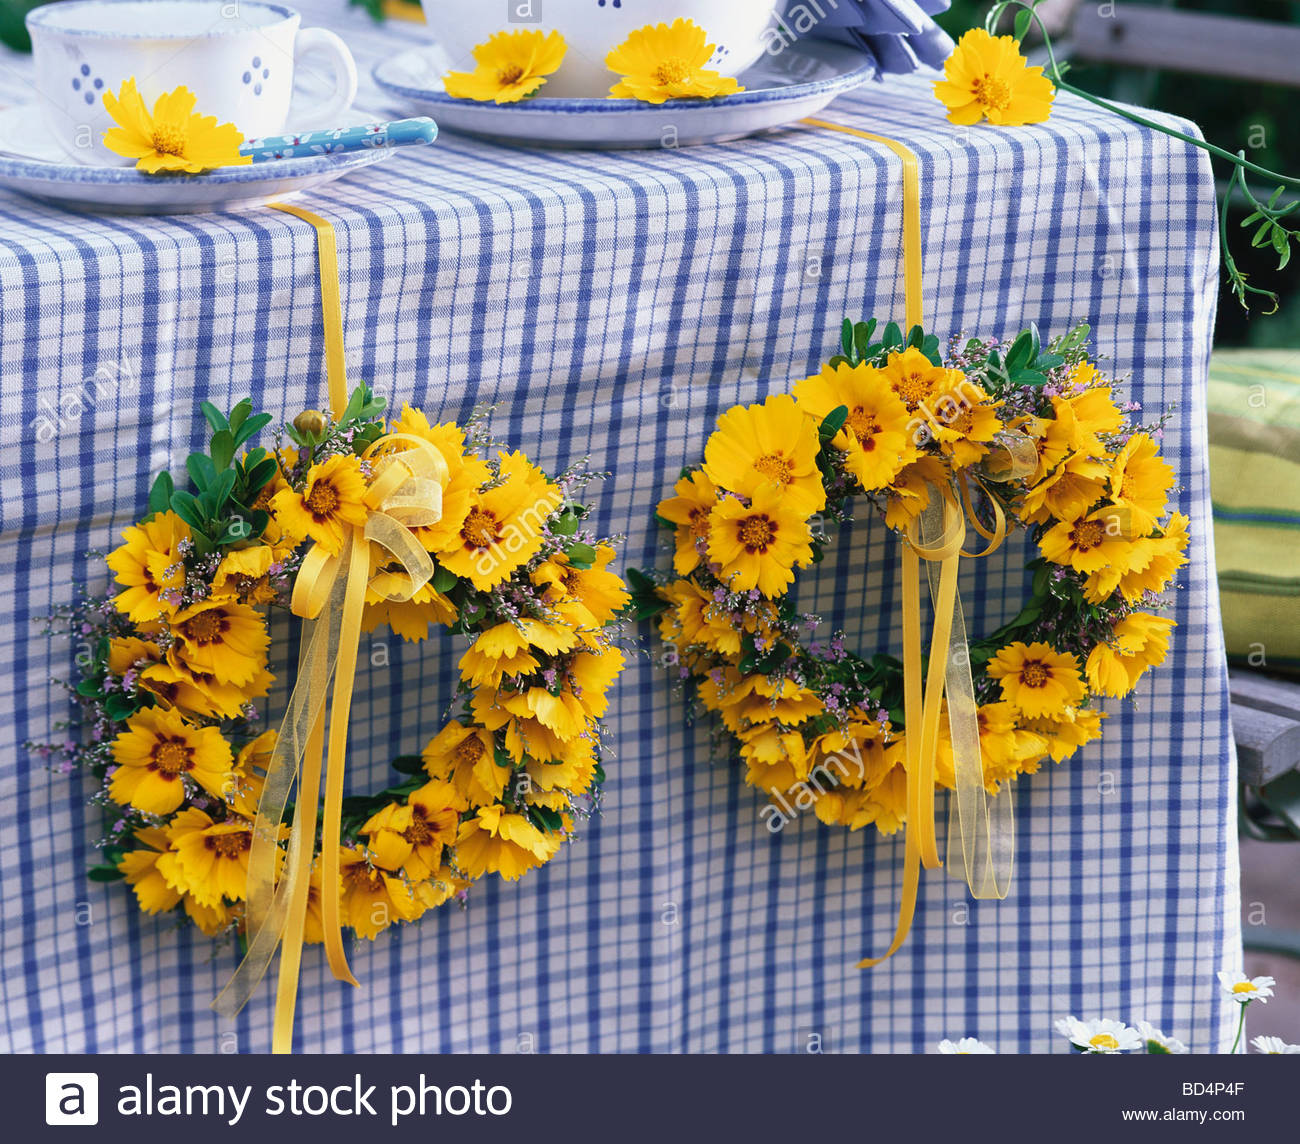 Of Wreaths Table Decoration Of Wreaths Of Coreopsis And Sea Lavender Stock